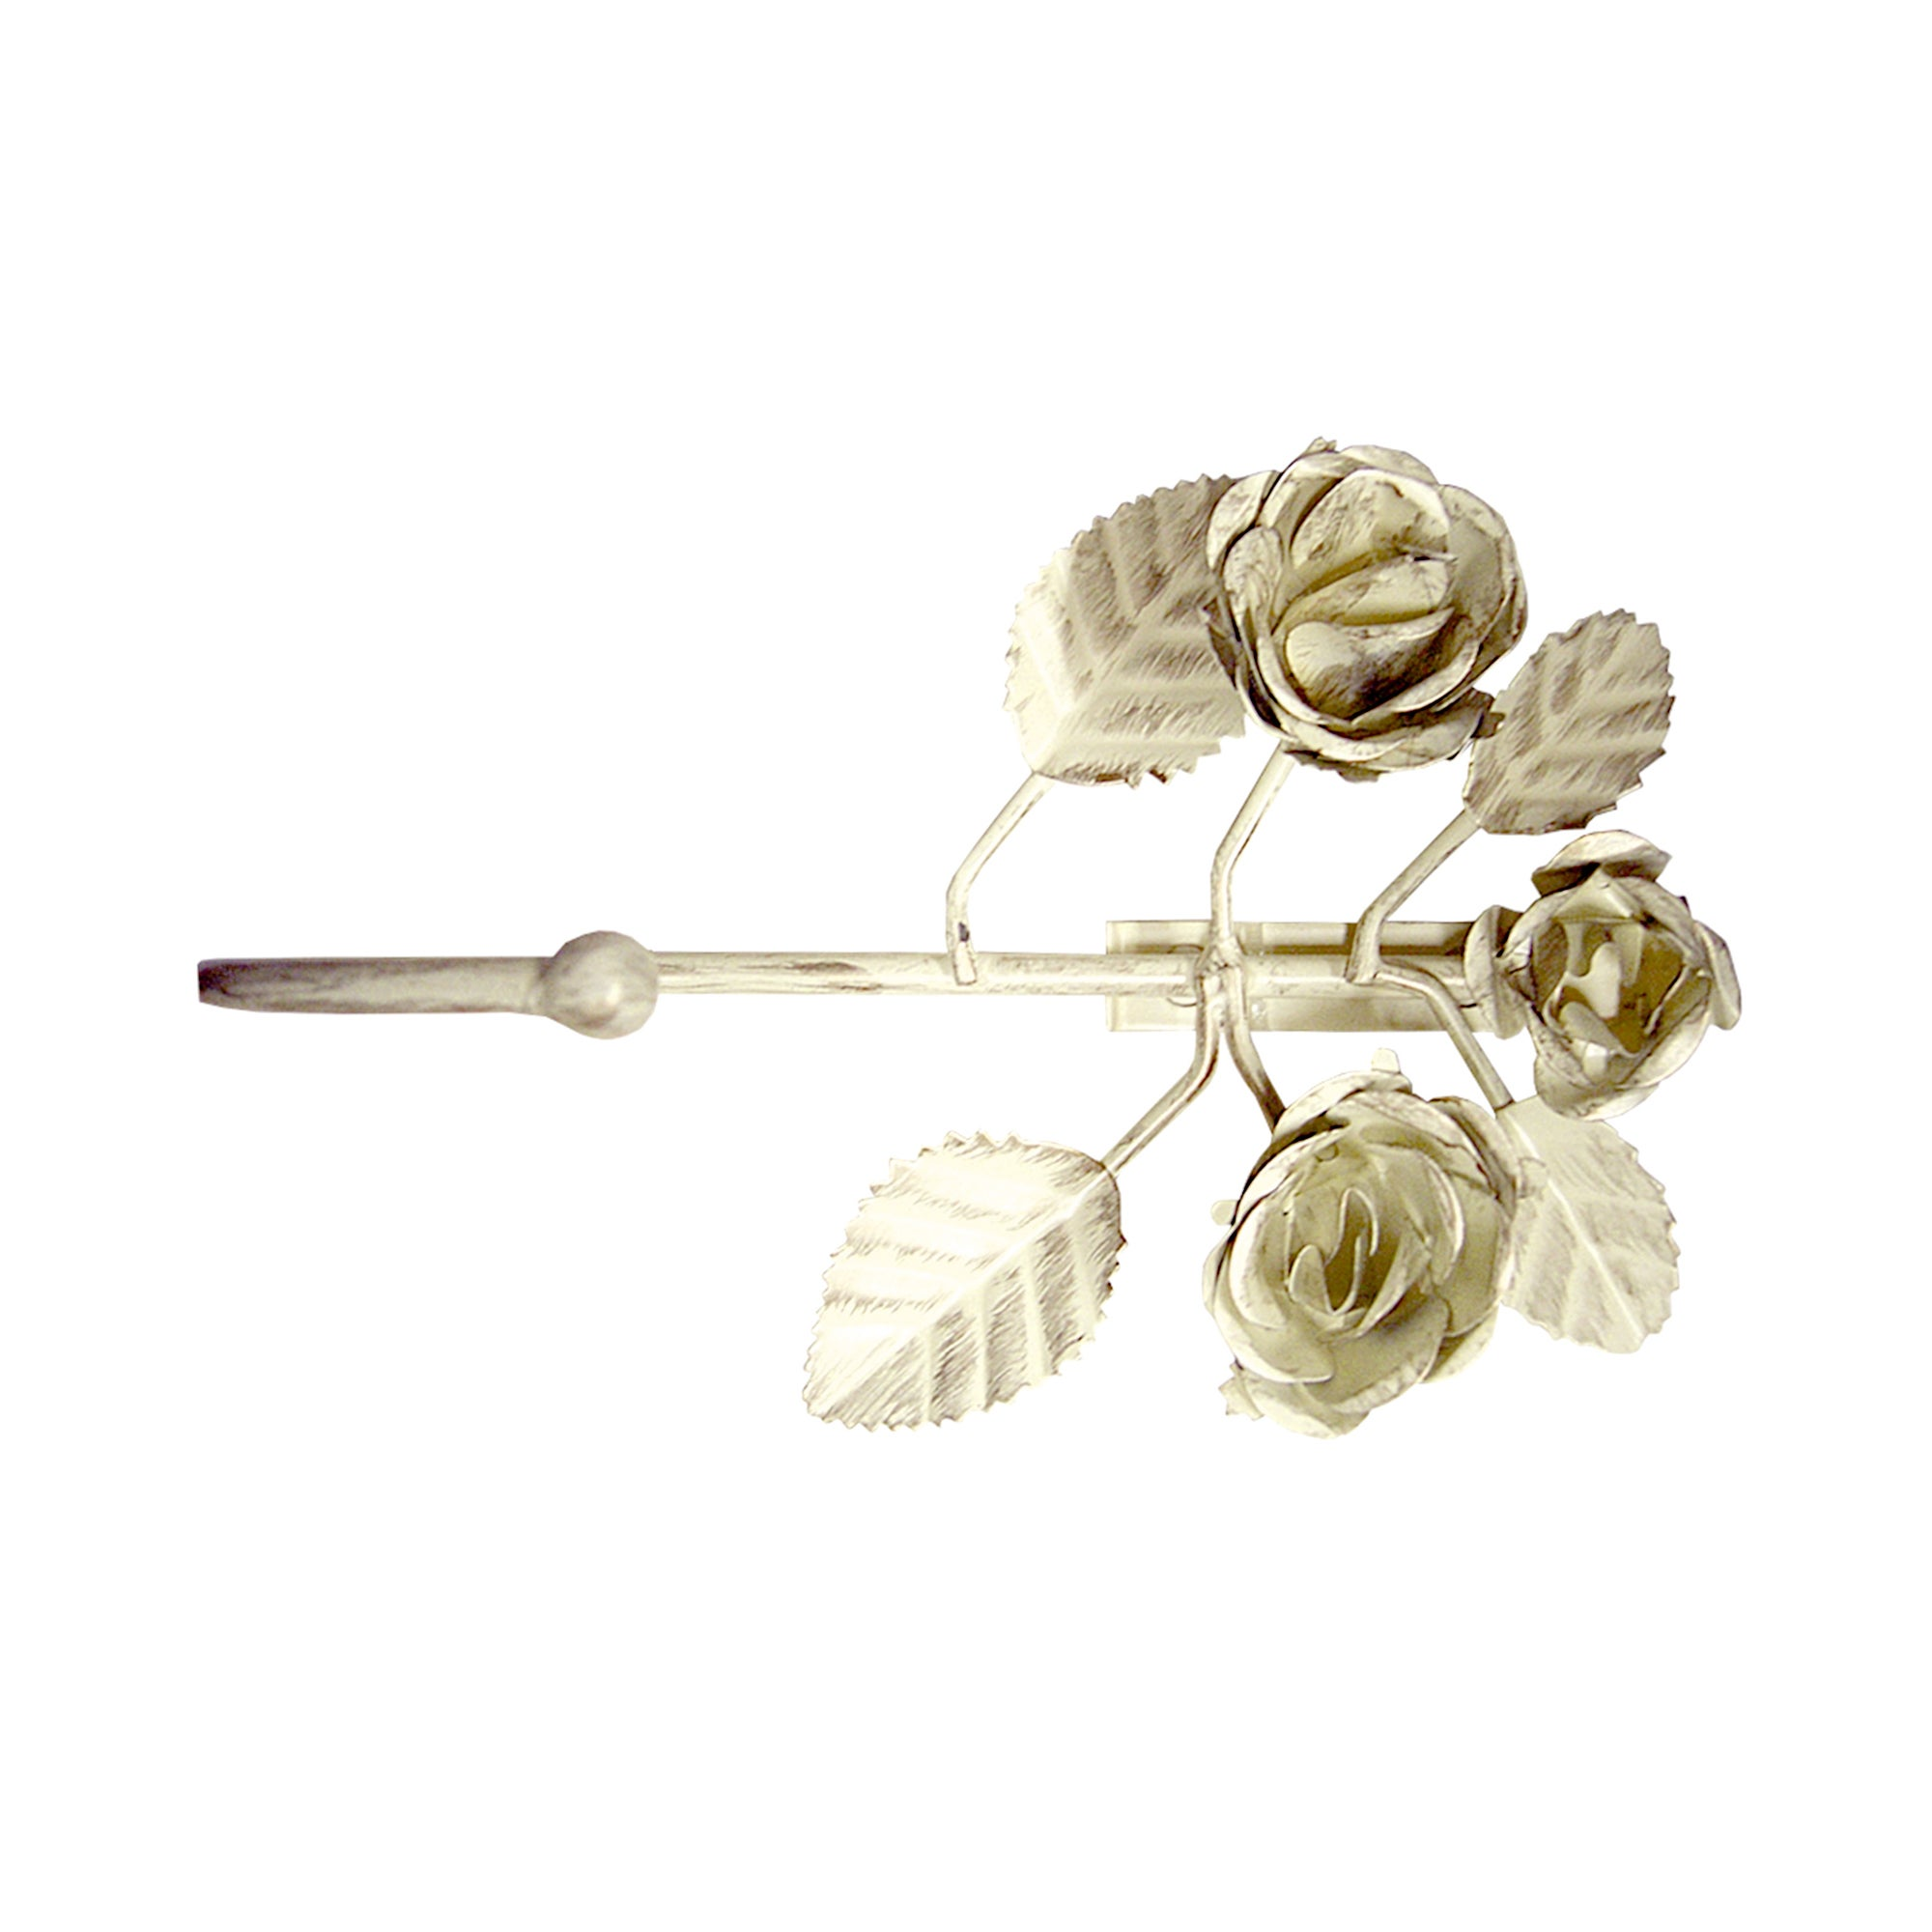 Vintage Collection 3 Roses Curtain Hook